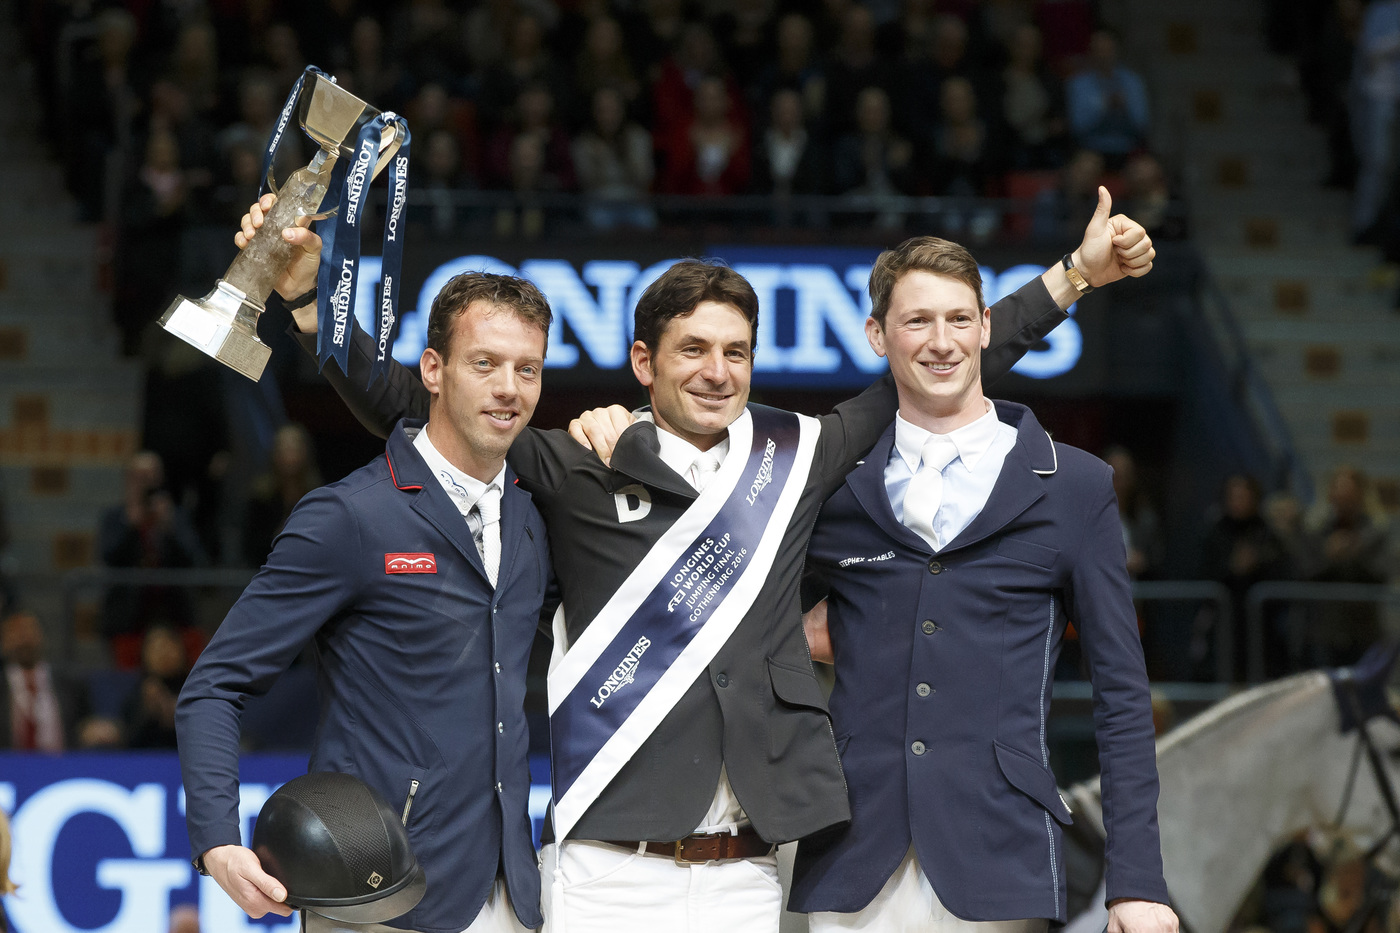 Longines Show Jumping Event: Amazing 2016 Longines FEI World Cup™ Jumping final in Gothenburg  2